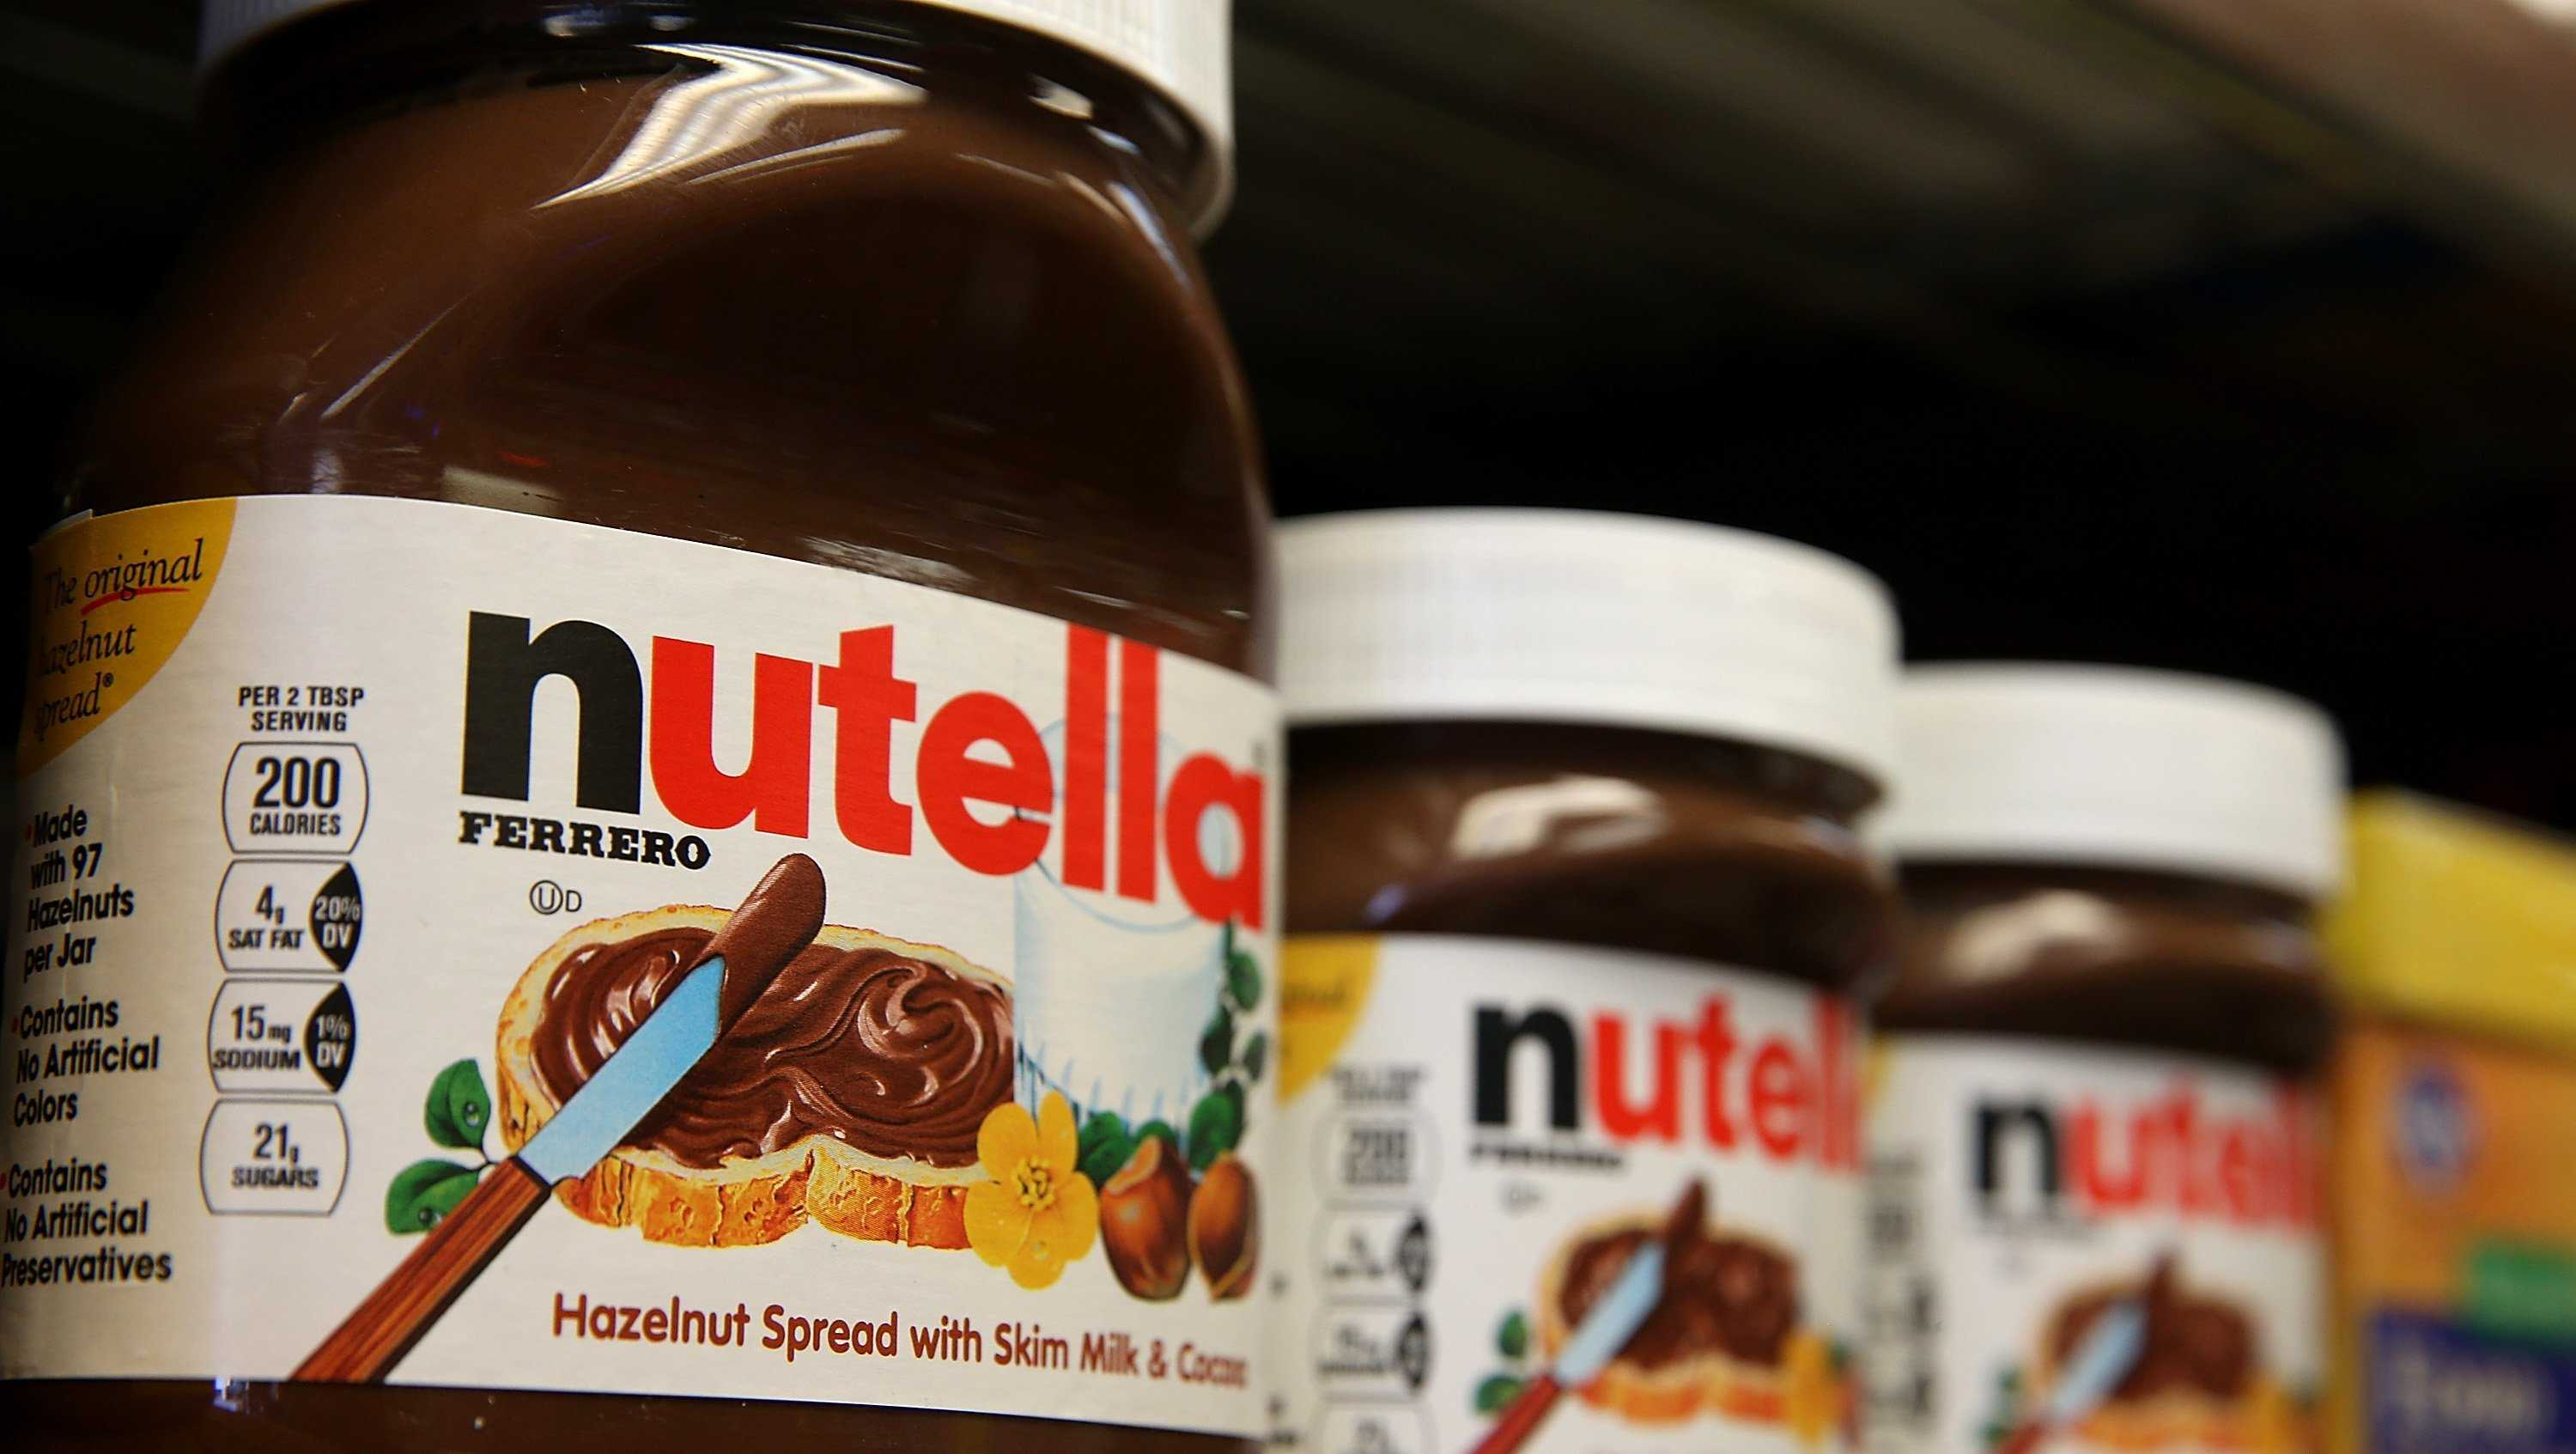 Shoppers caused a riot in a French supermarket when they offered discounted Nutella.